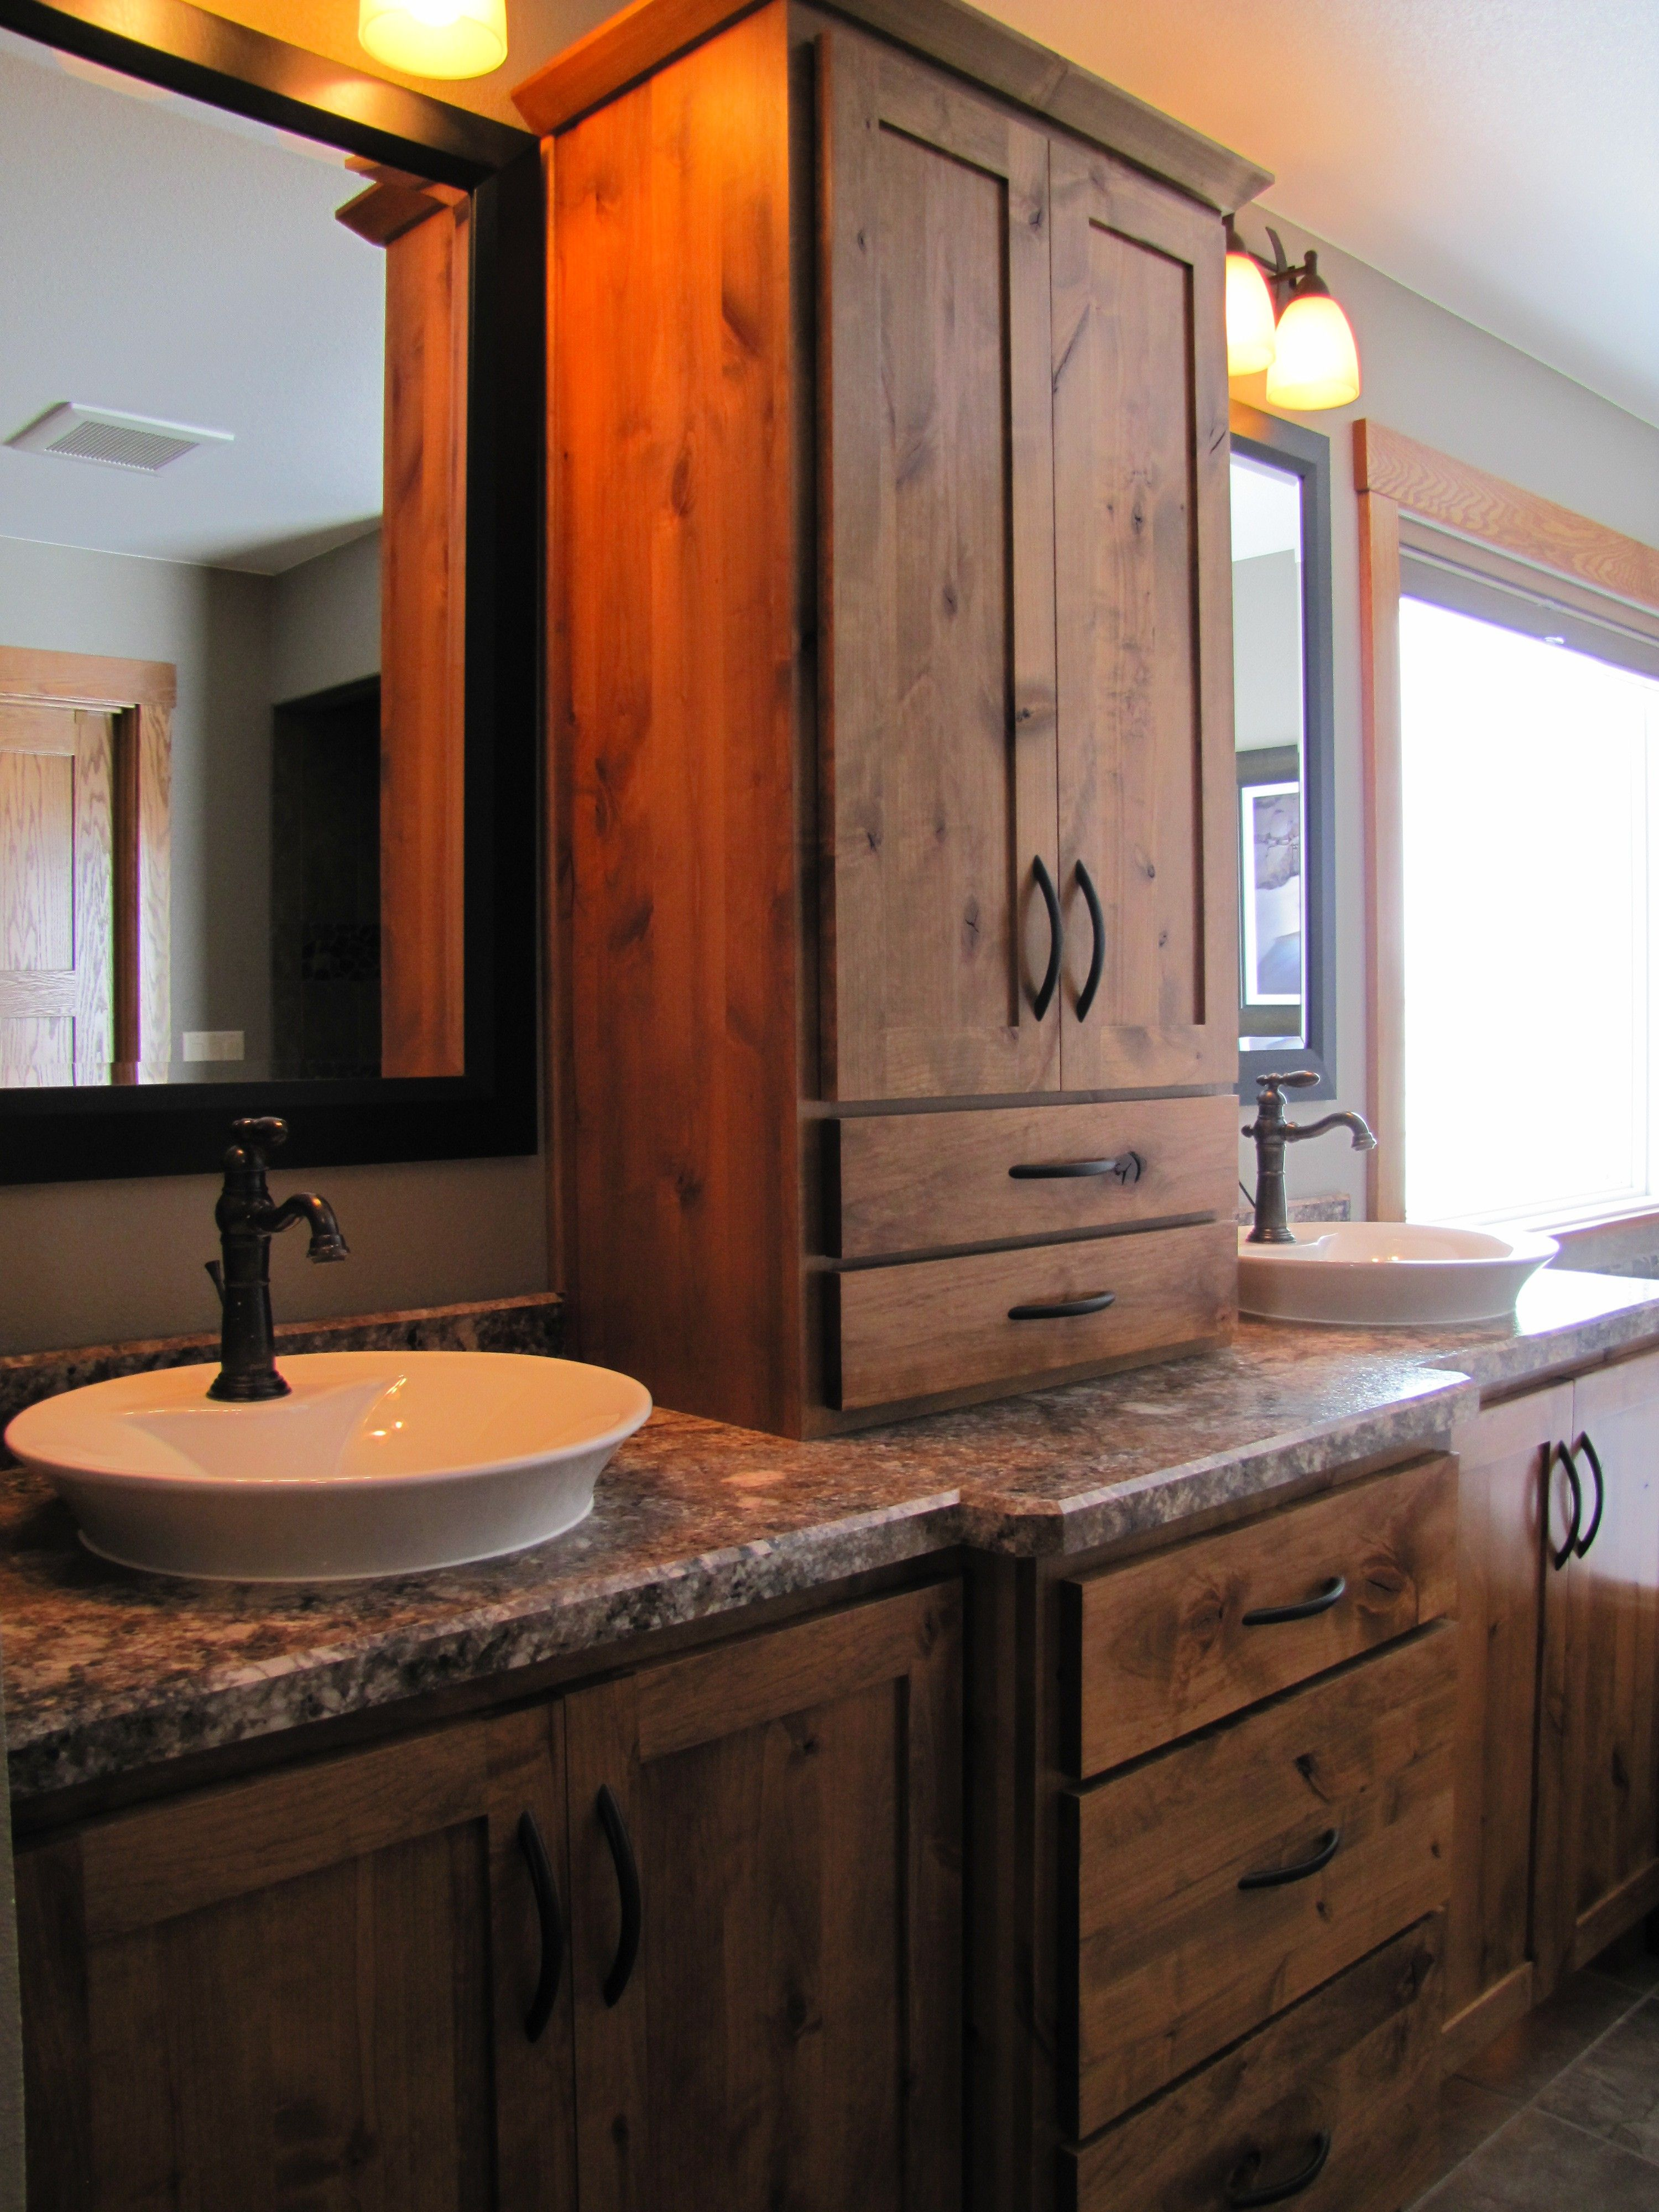 Bathrooms ideas simple and affordable rustic kitchen cabinets home